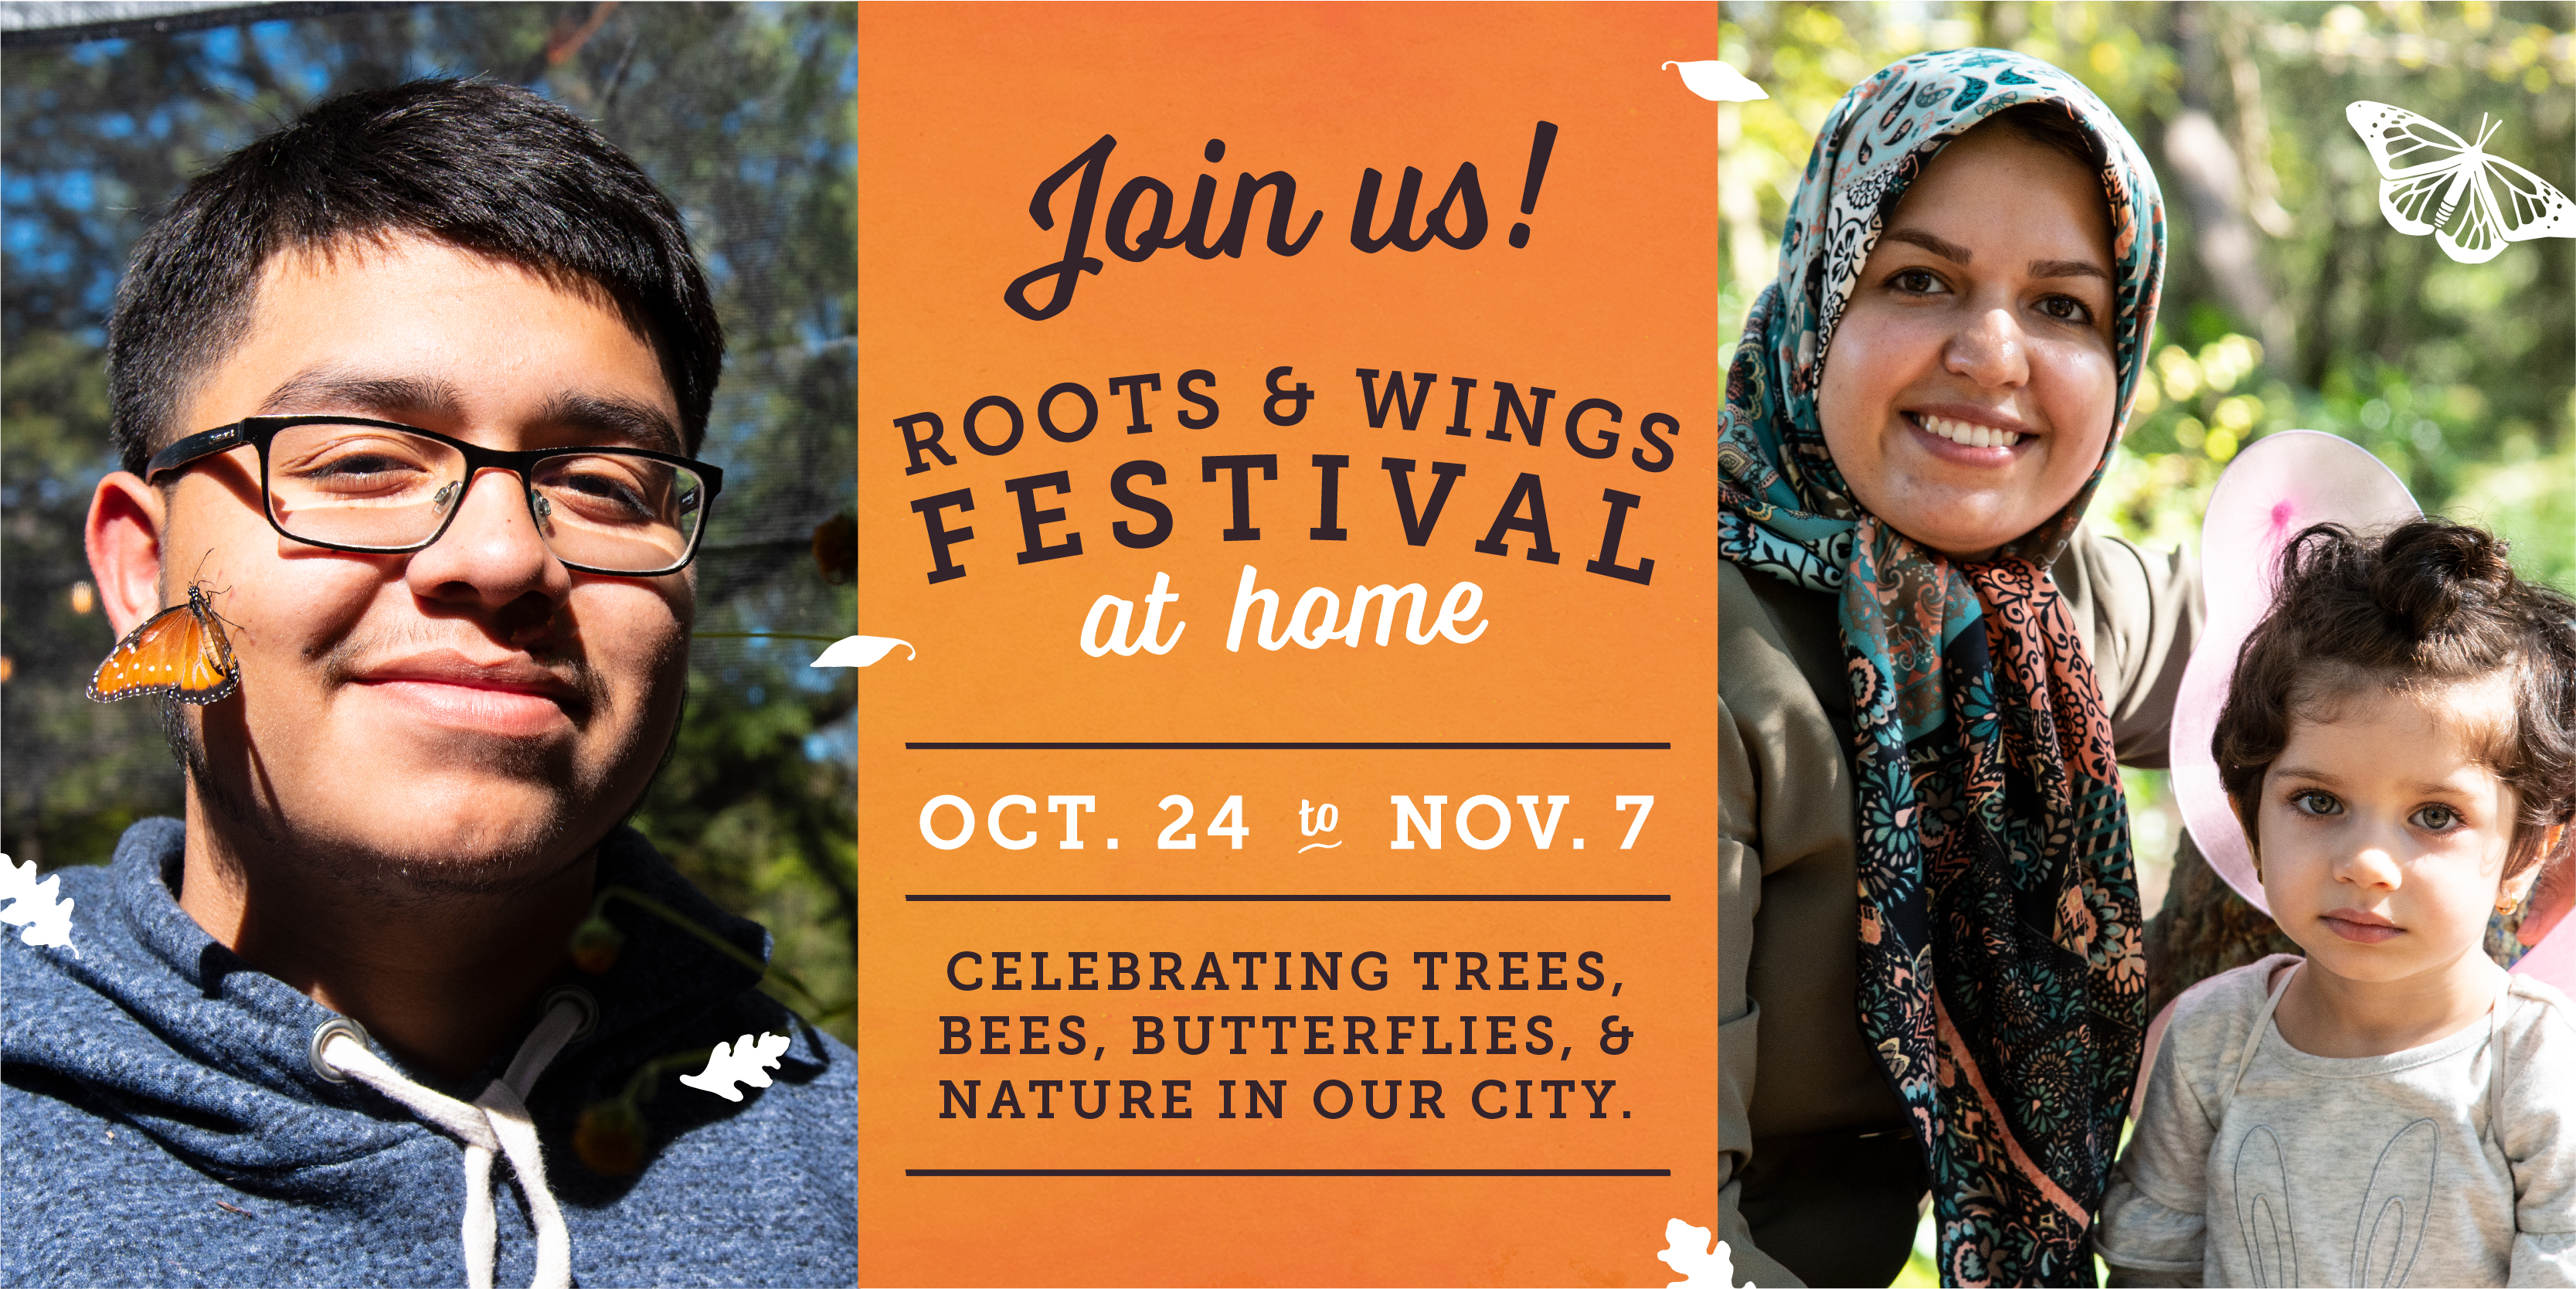 Join us at the 2020 Roots & Wings Festival. October 24 thru November 7.